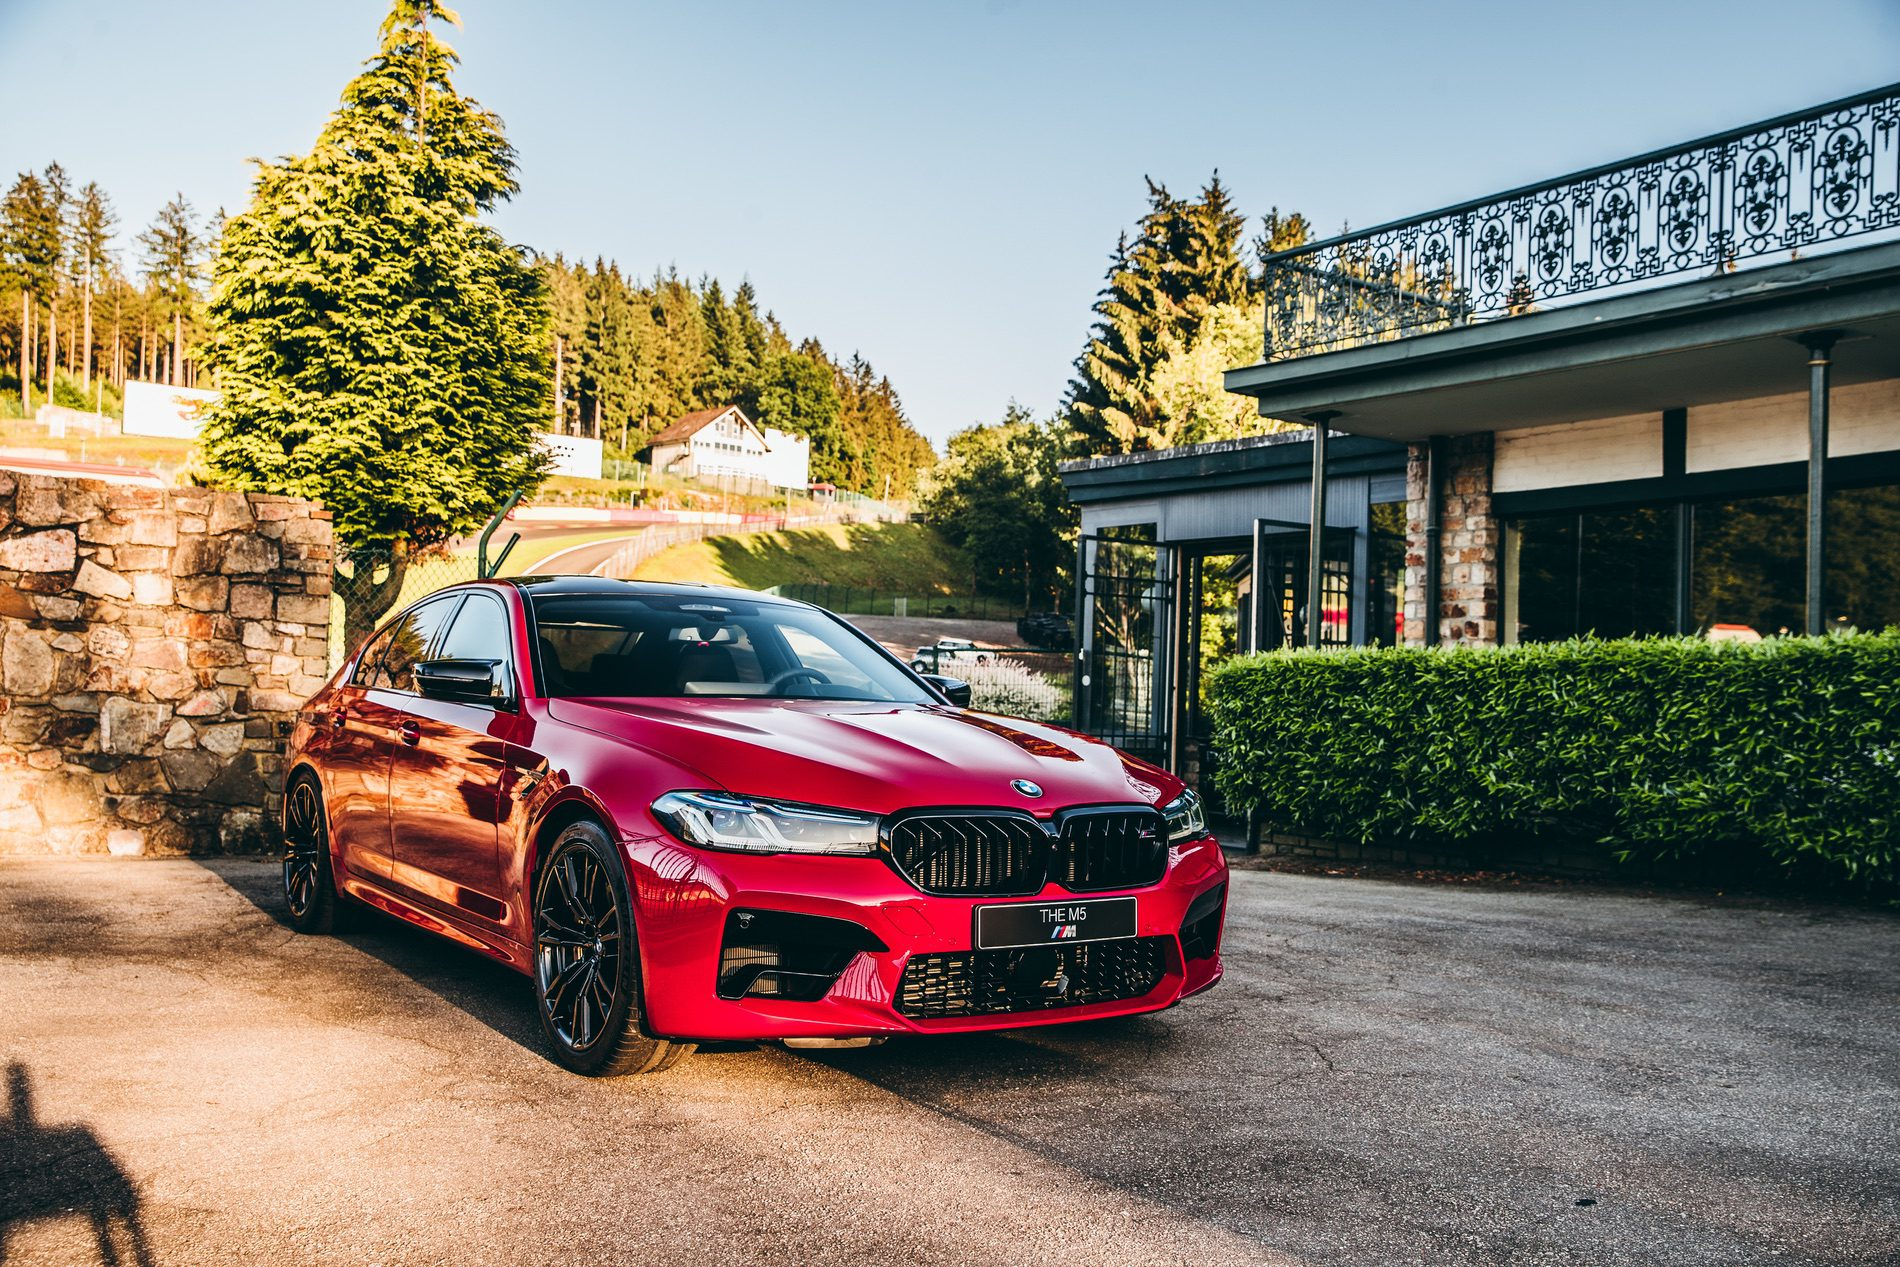 2021 BMW M5 Facelift in Imola Red | VRCarLink